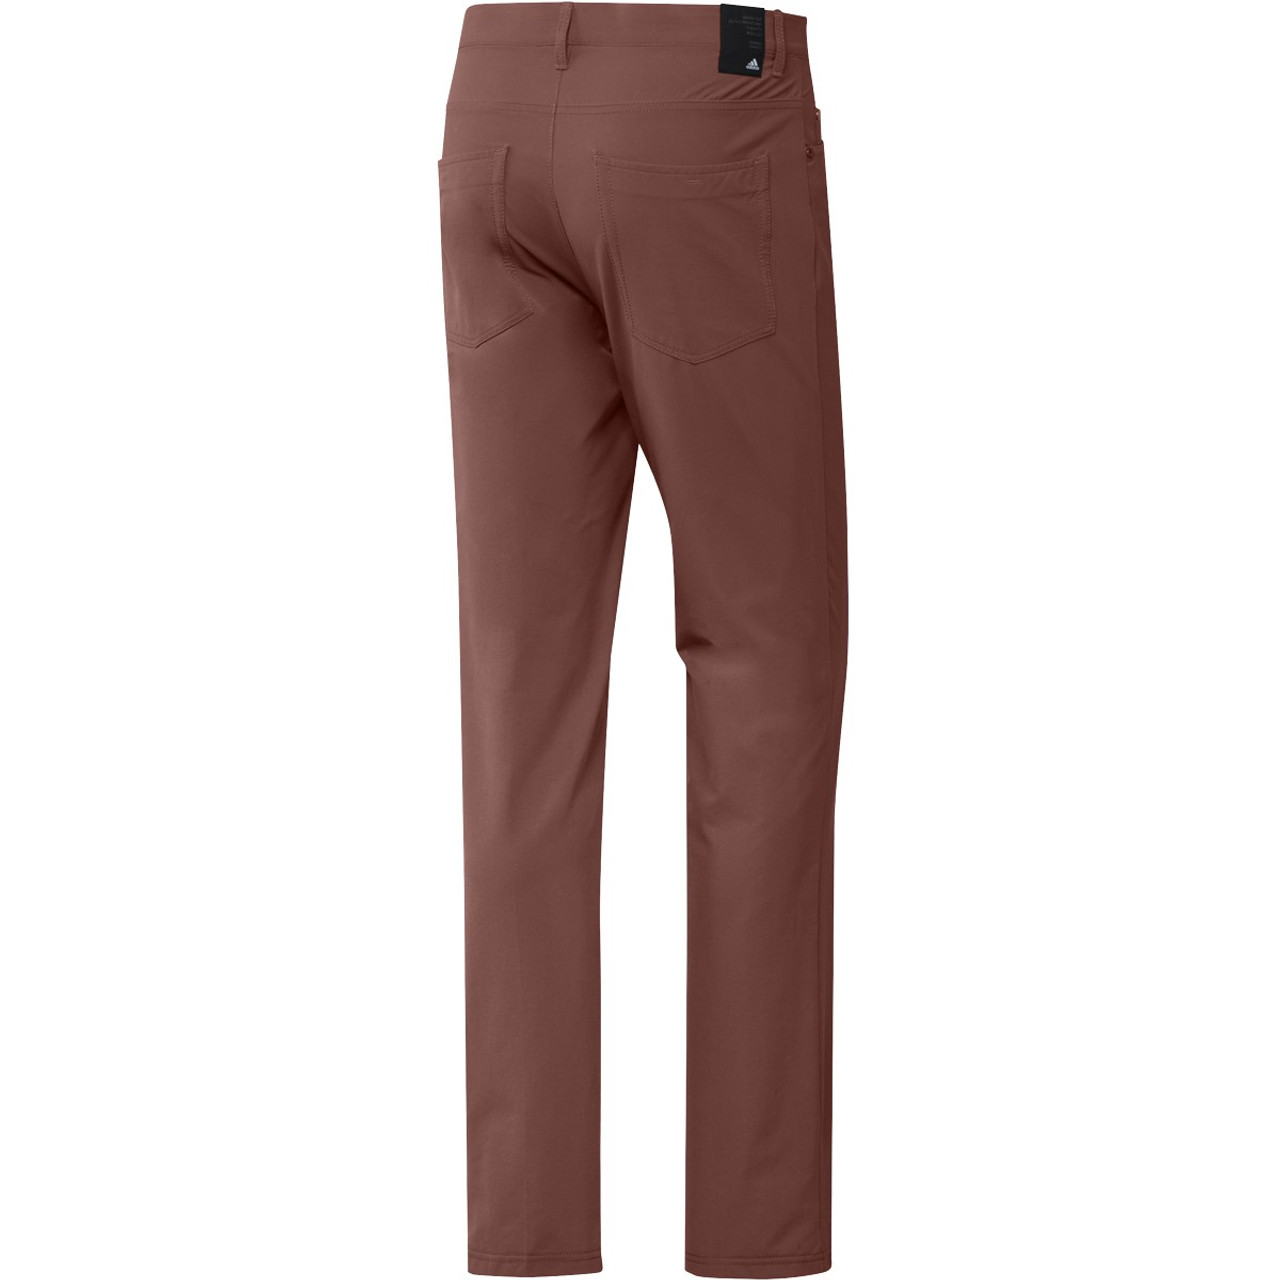 Adidas GO-TO Five Pocket Pants- Wild Sepia